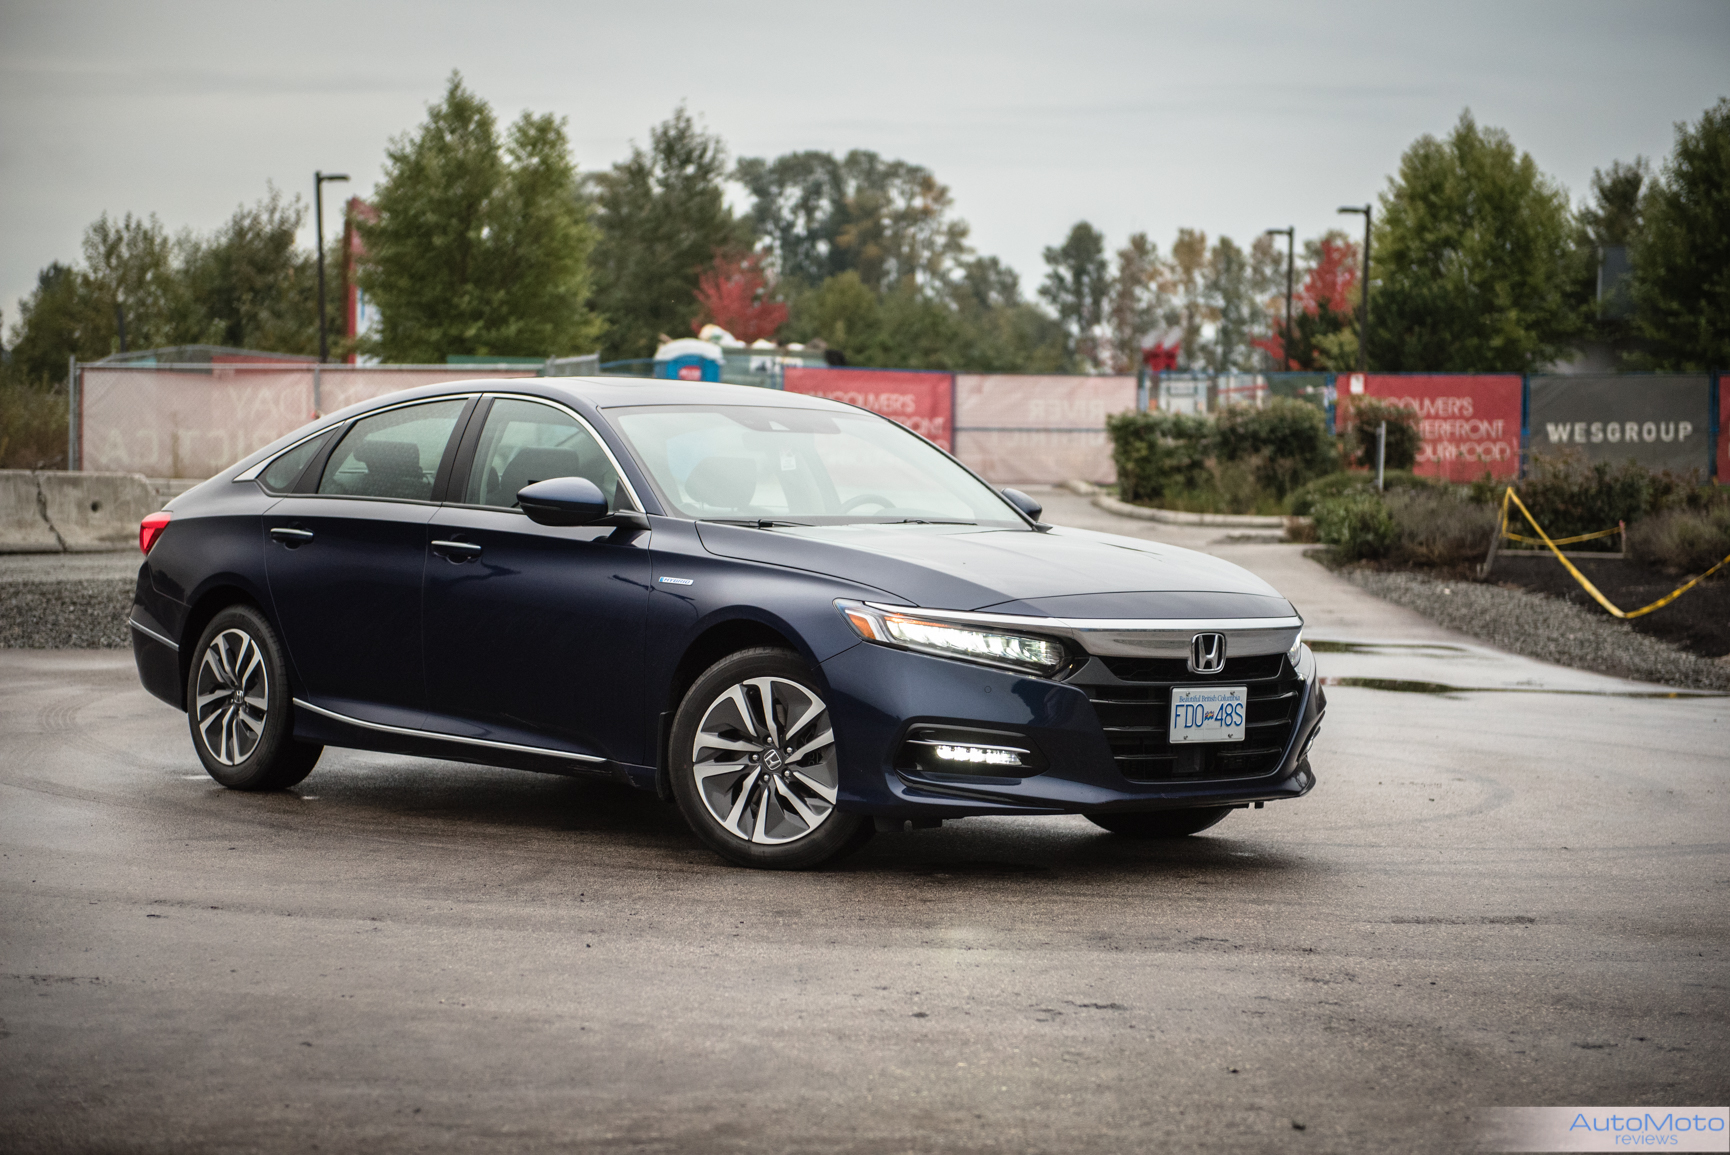 2018 Honda Accord Hybrid-3